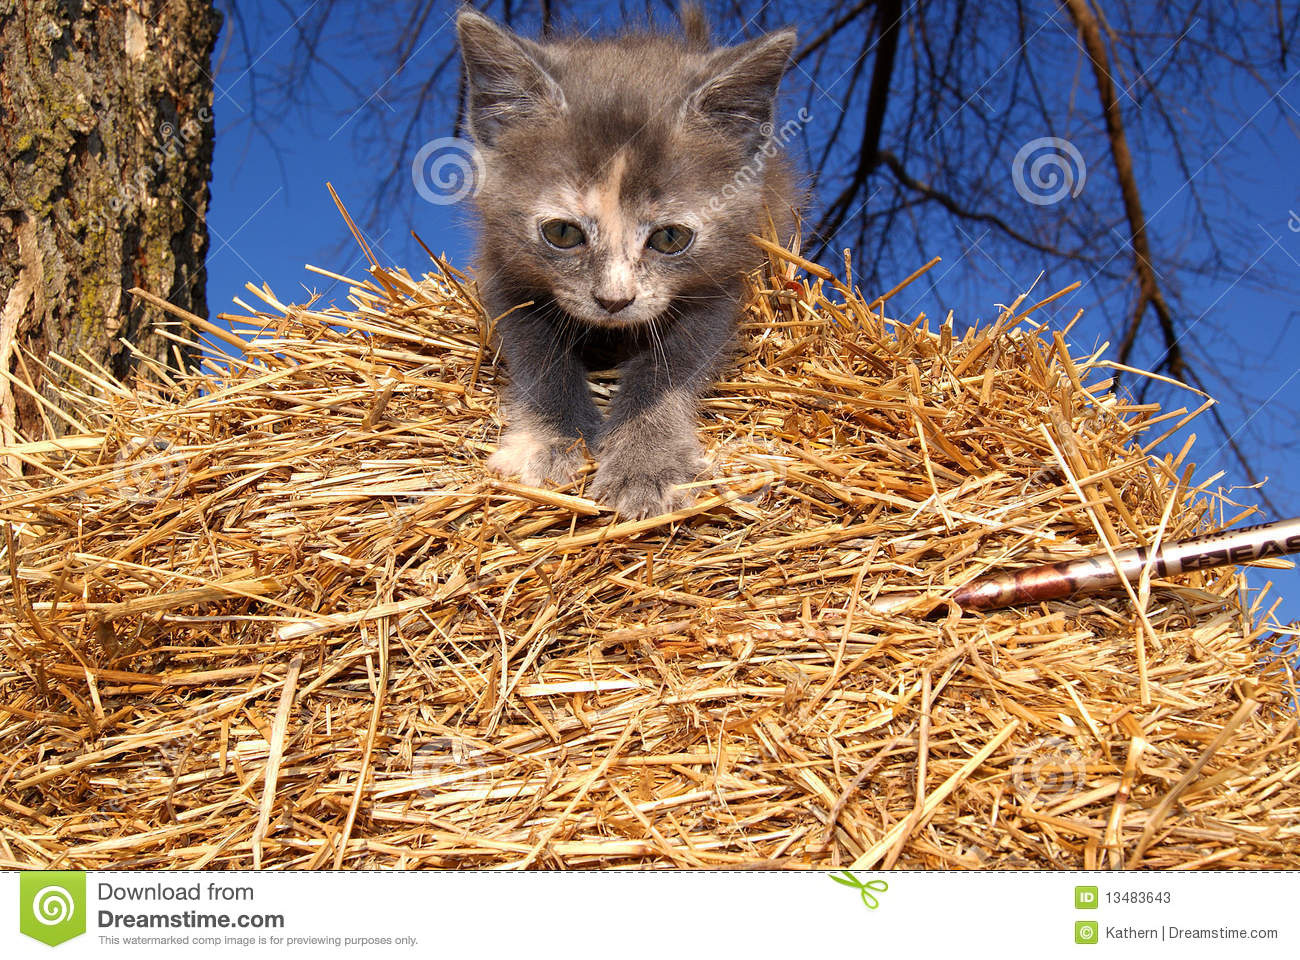 Kitten On Straw Hay Bale Stock Photos - Image: 13483643